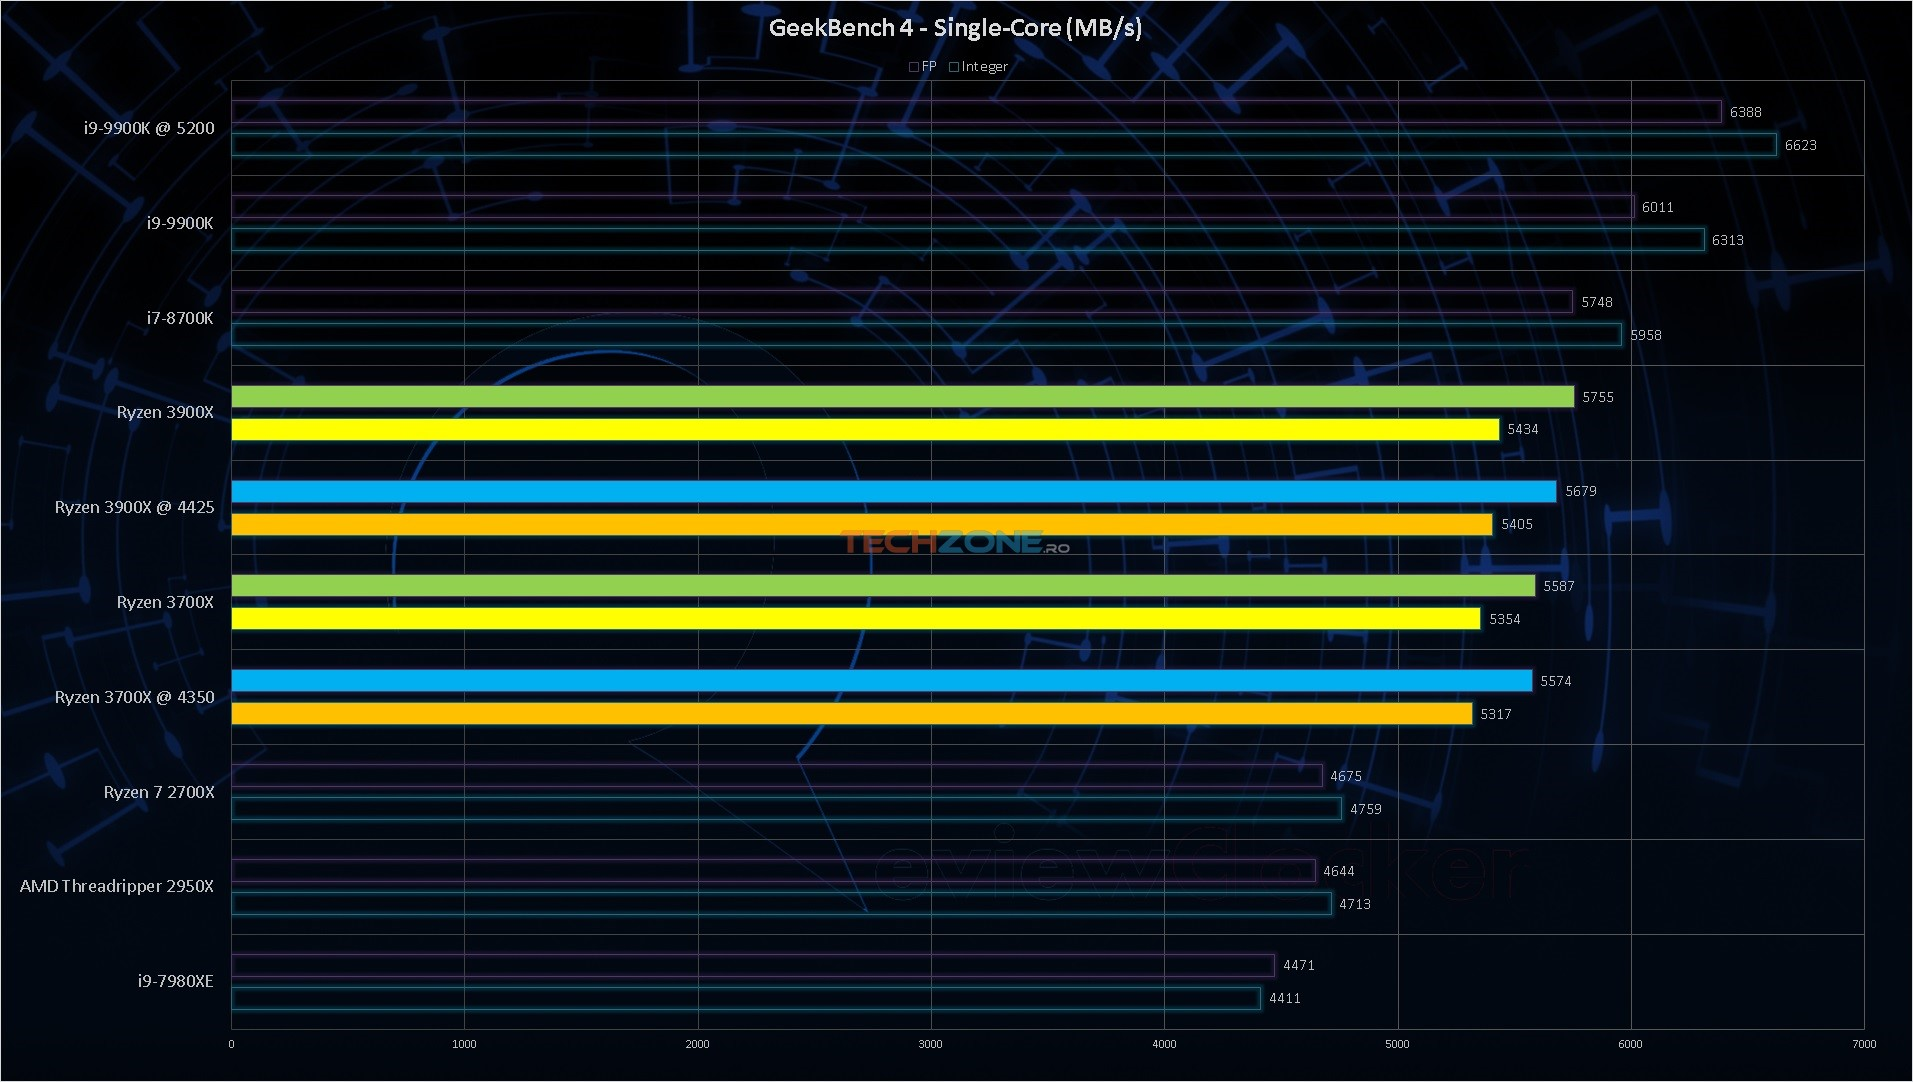 Ryzen 3000 Geekbench single